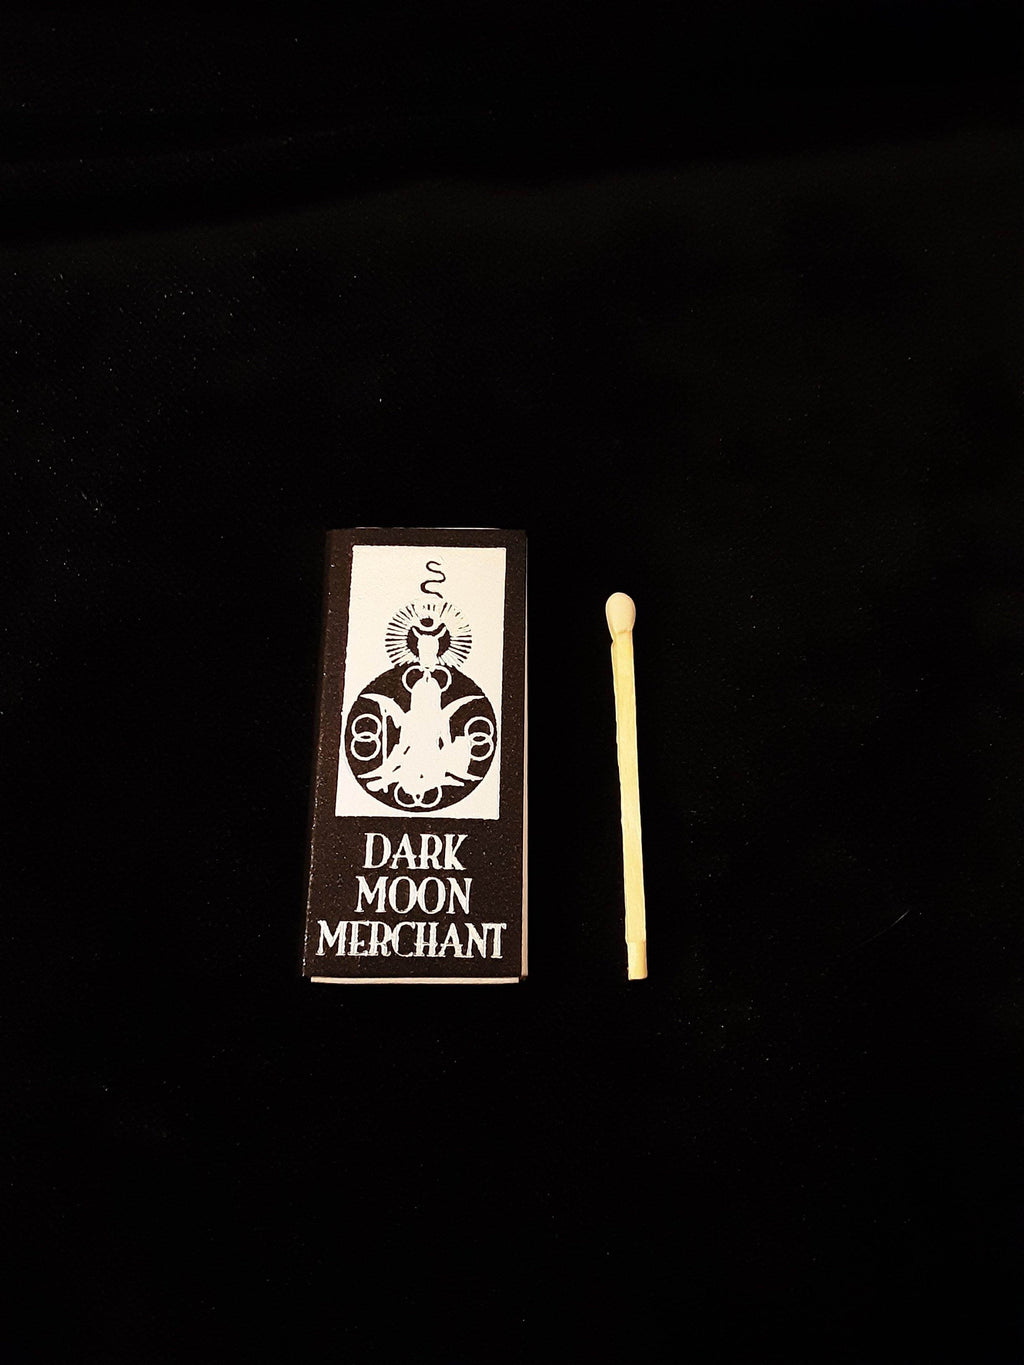 Dark Moon Merchant Matchbook Candles